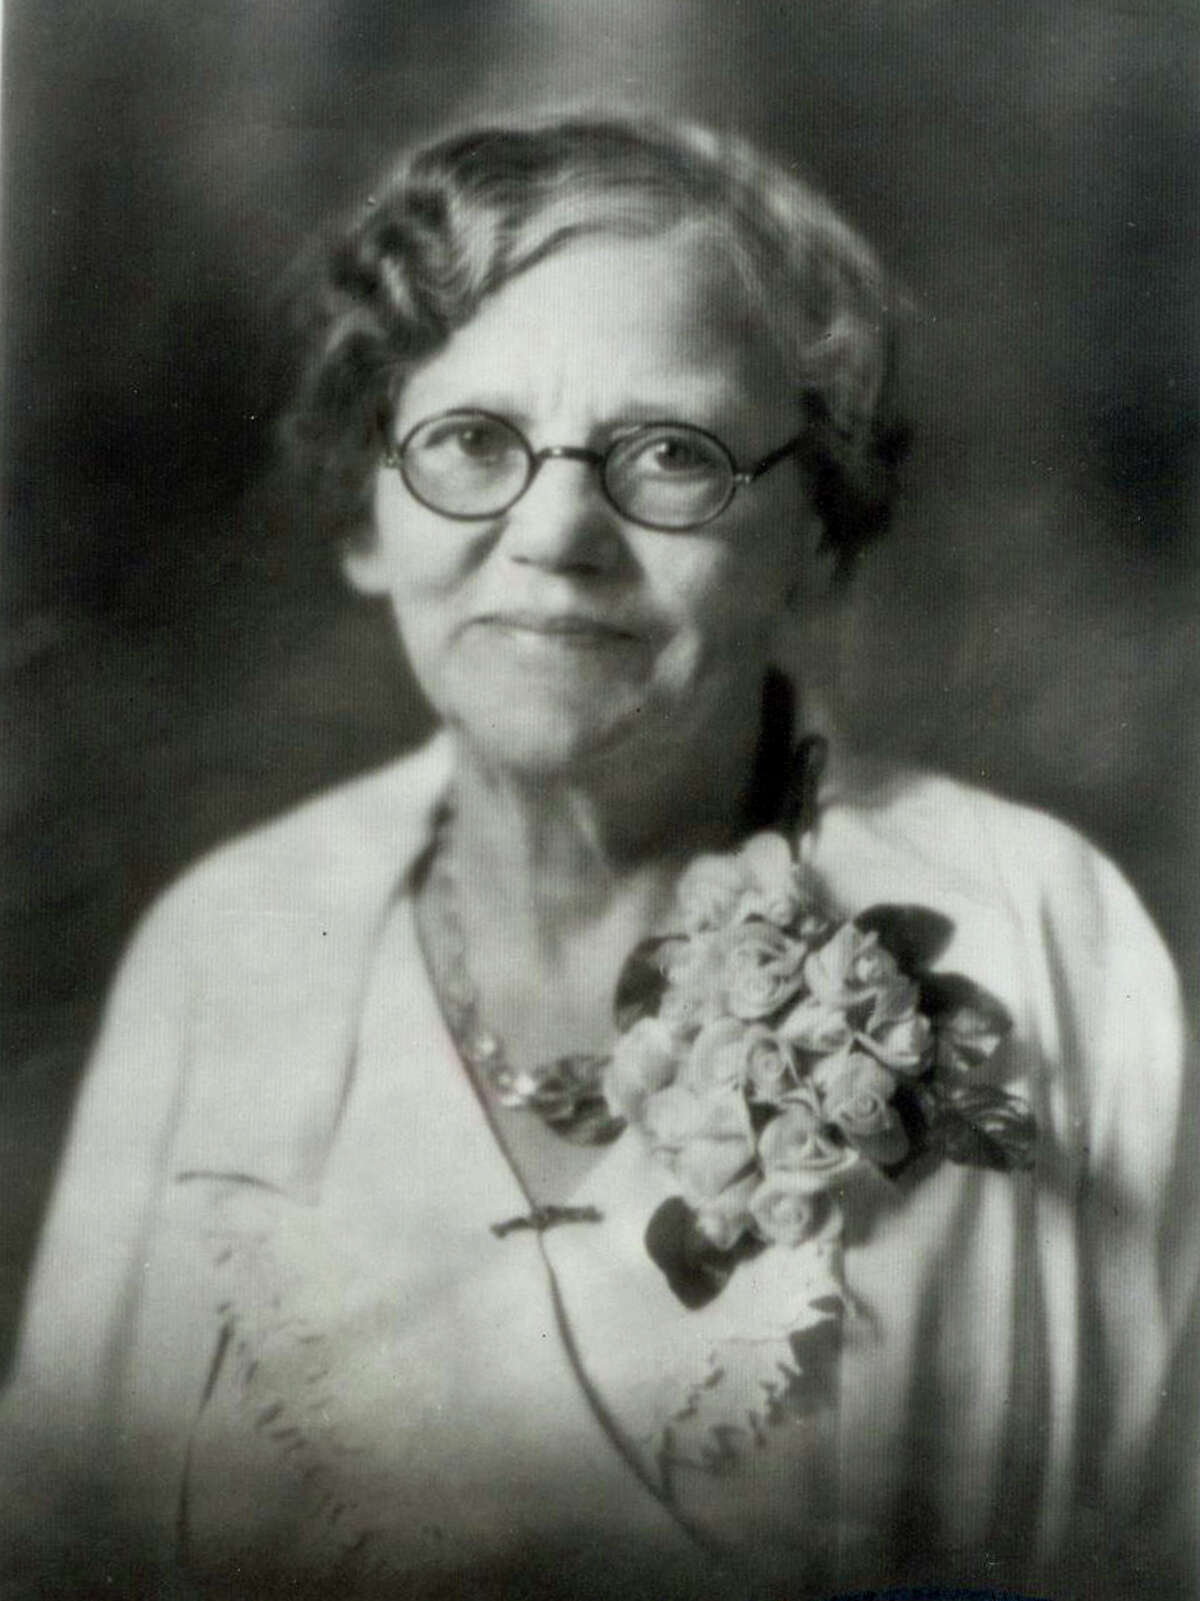 Florence Butt, whose grocery store in Kerrville in 1905 was the foundation of the H-E-B chain. She died at age 89 in 1954.